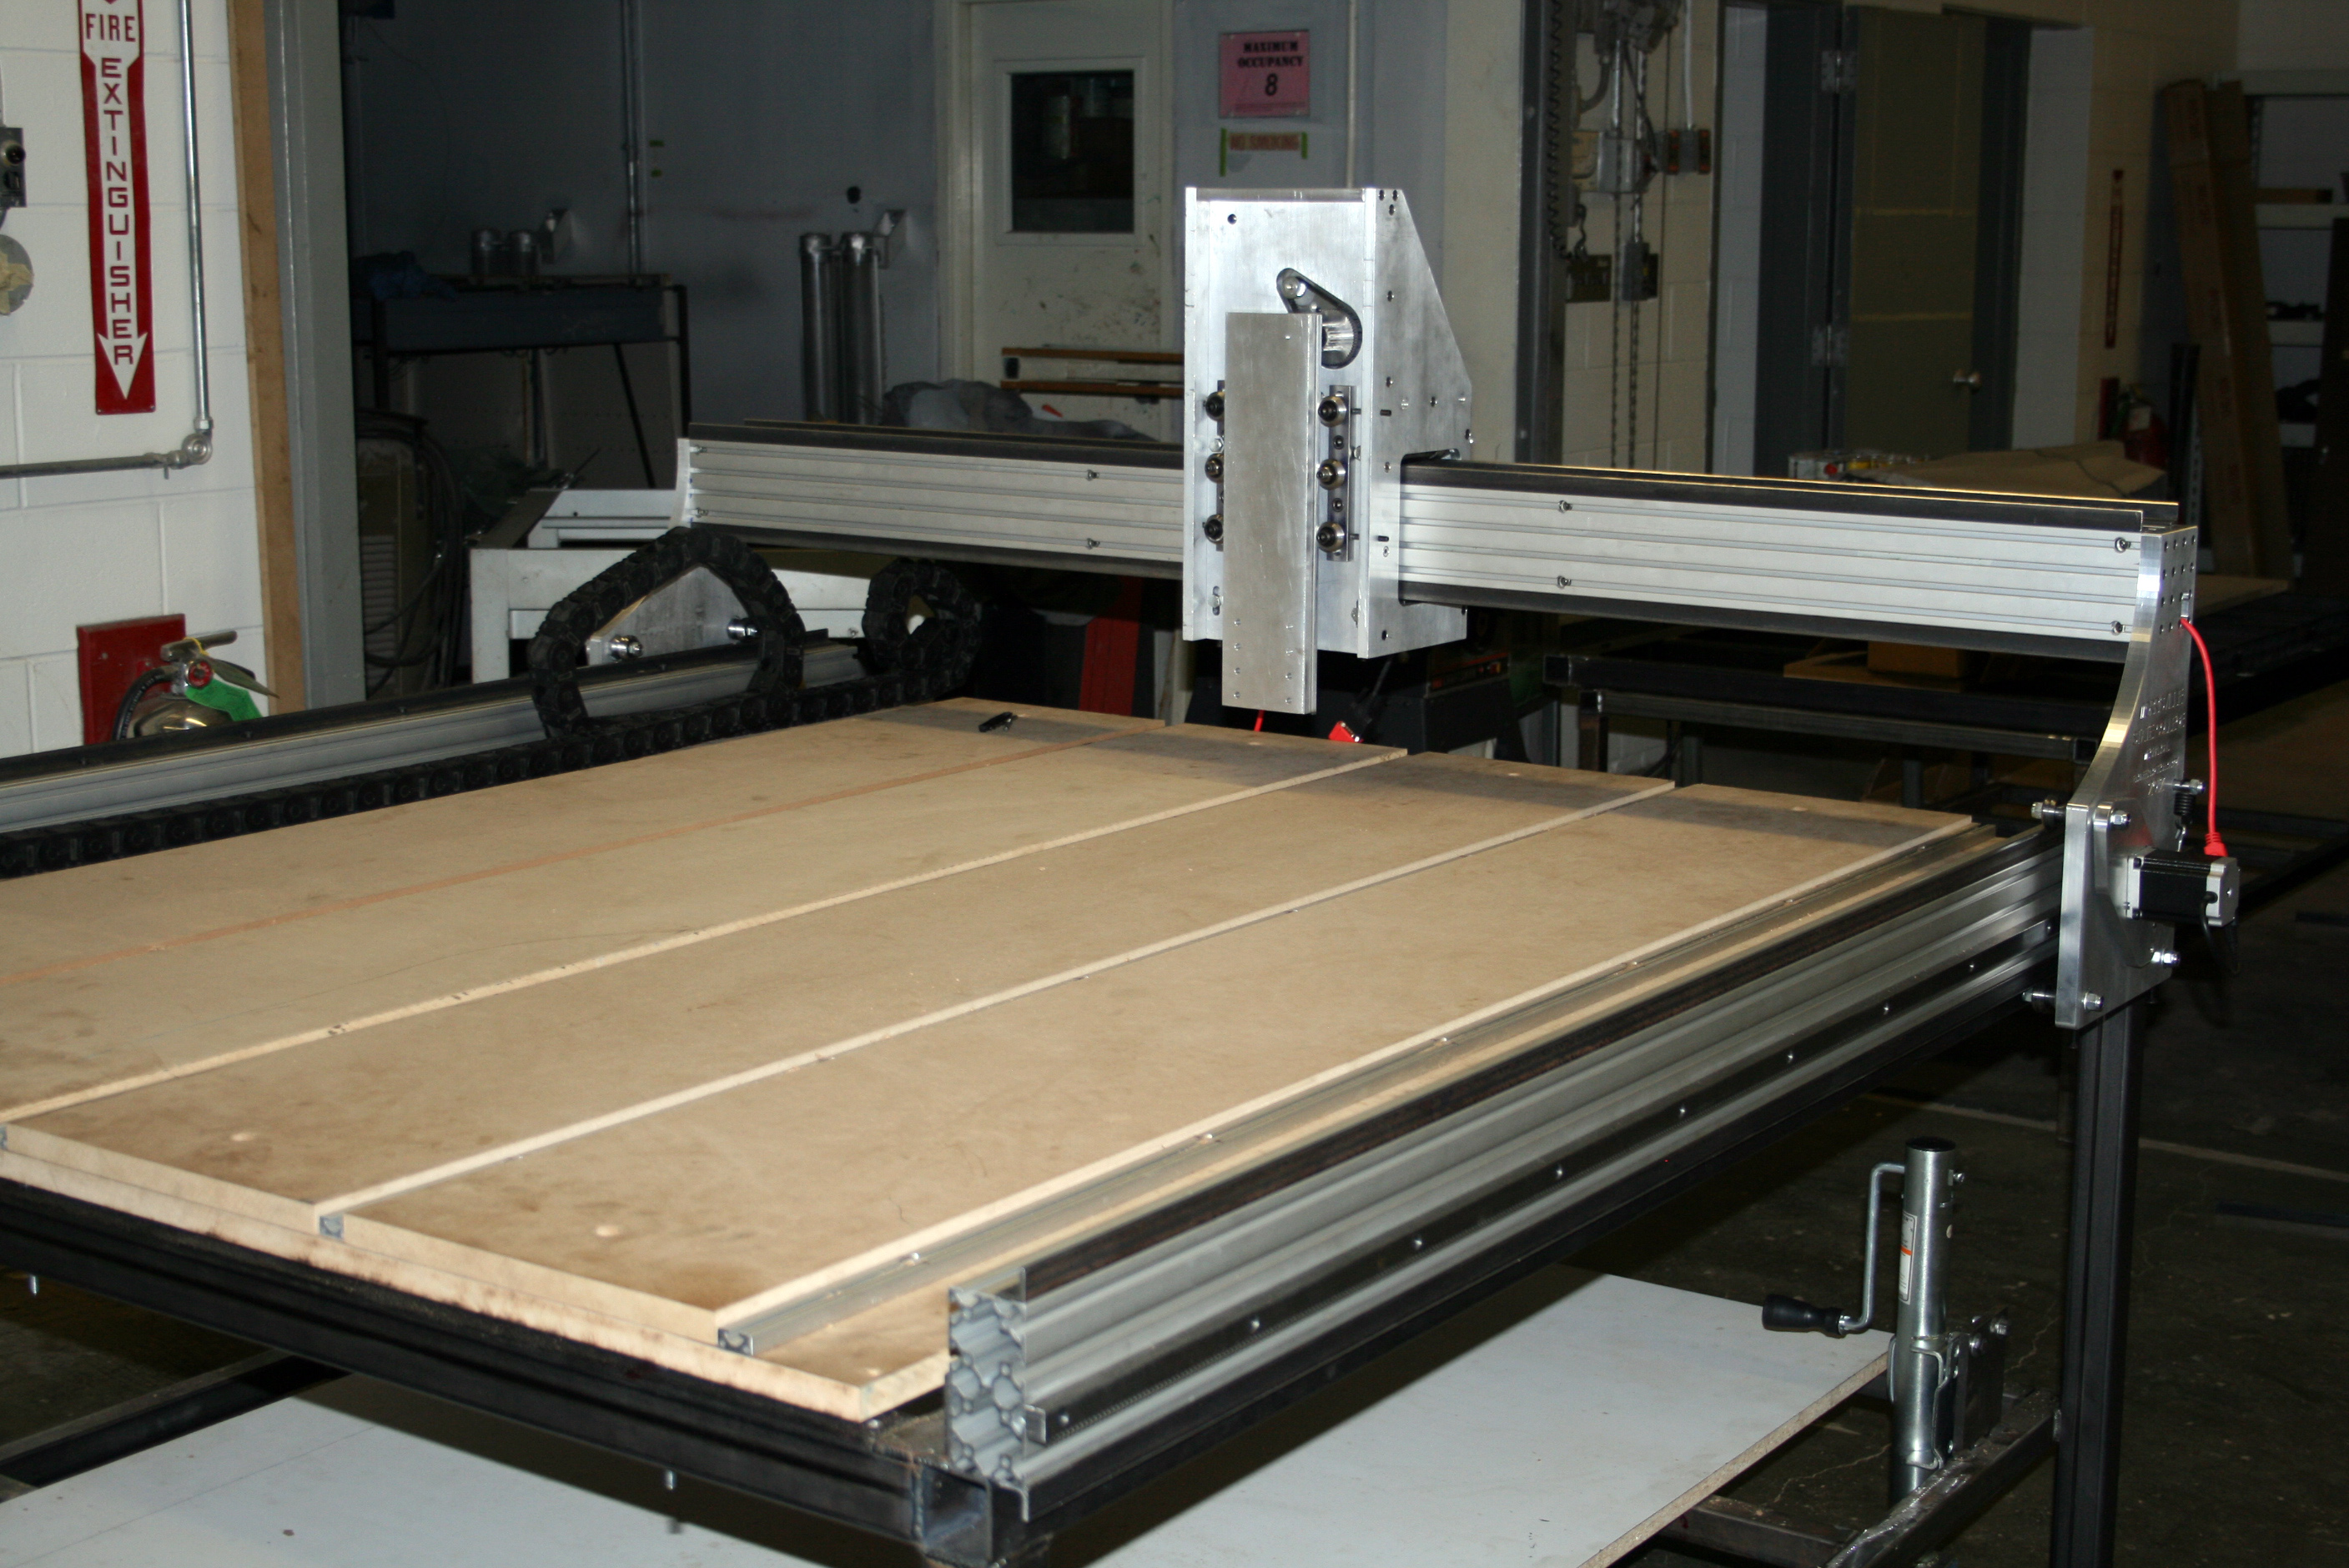 How to build homemade cnc router table plans plans woodworking homemade cnc router table plans keyboard keysfo Image collections